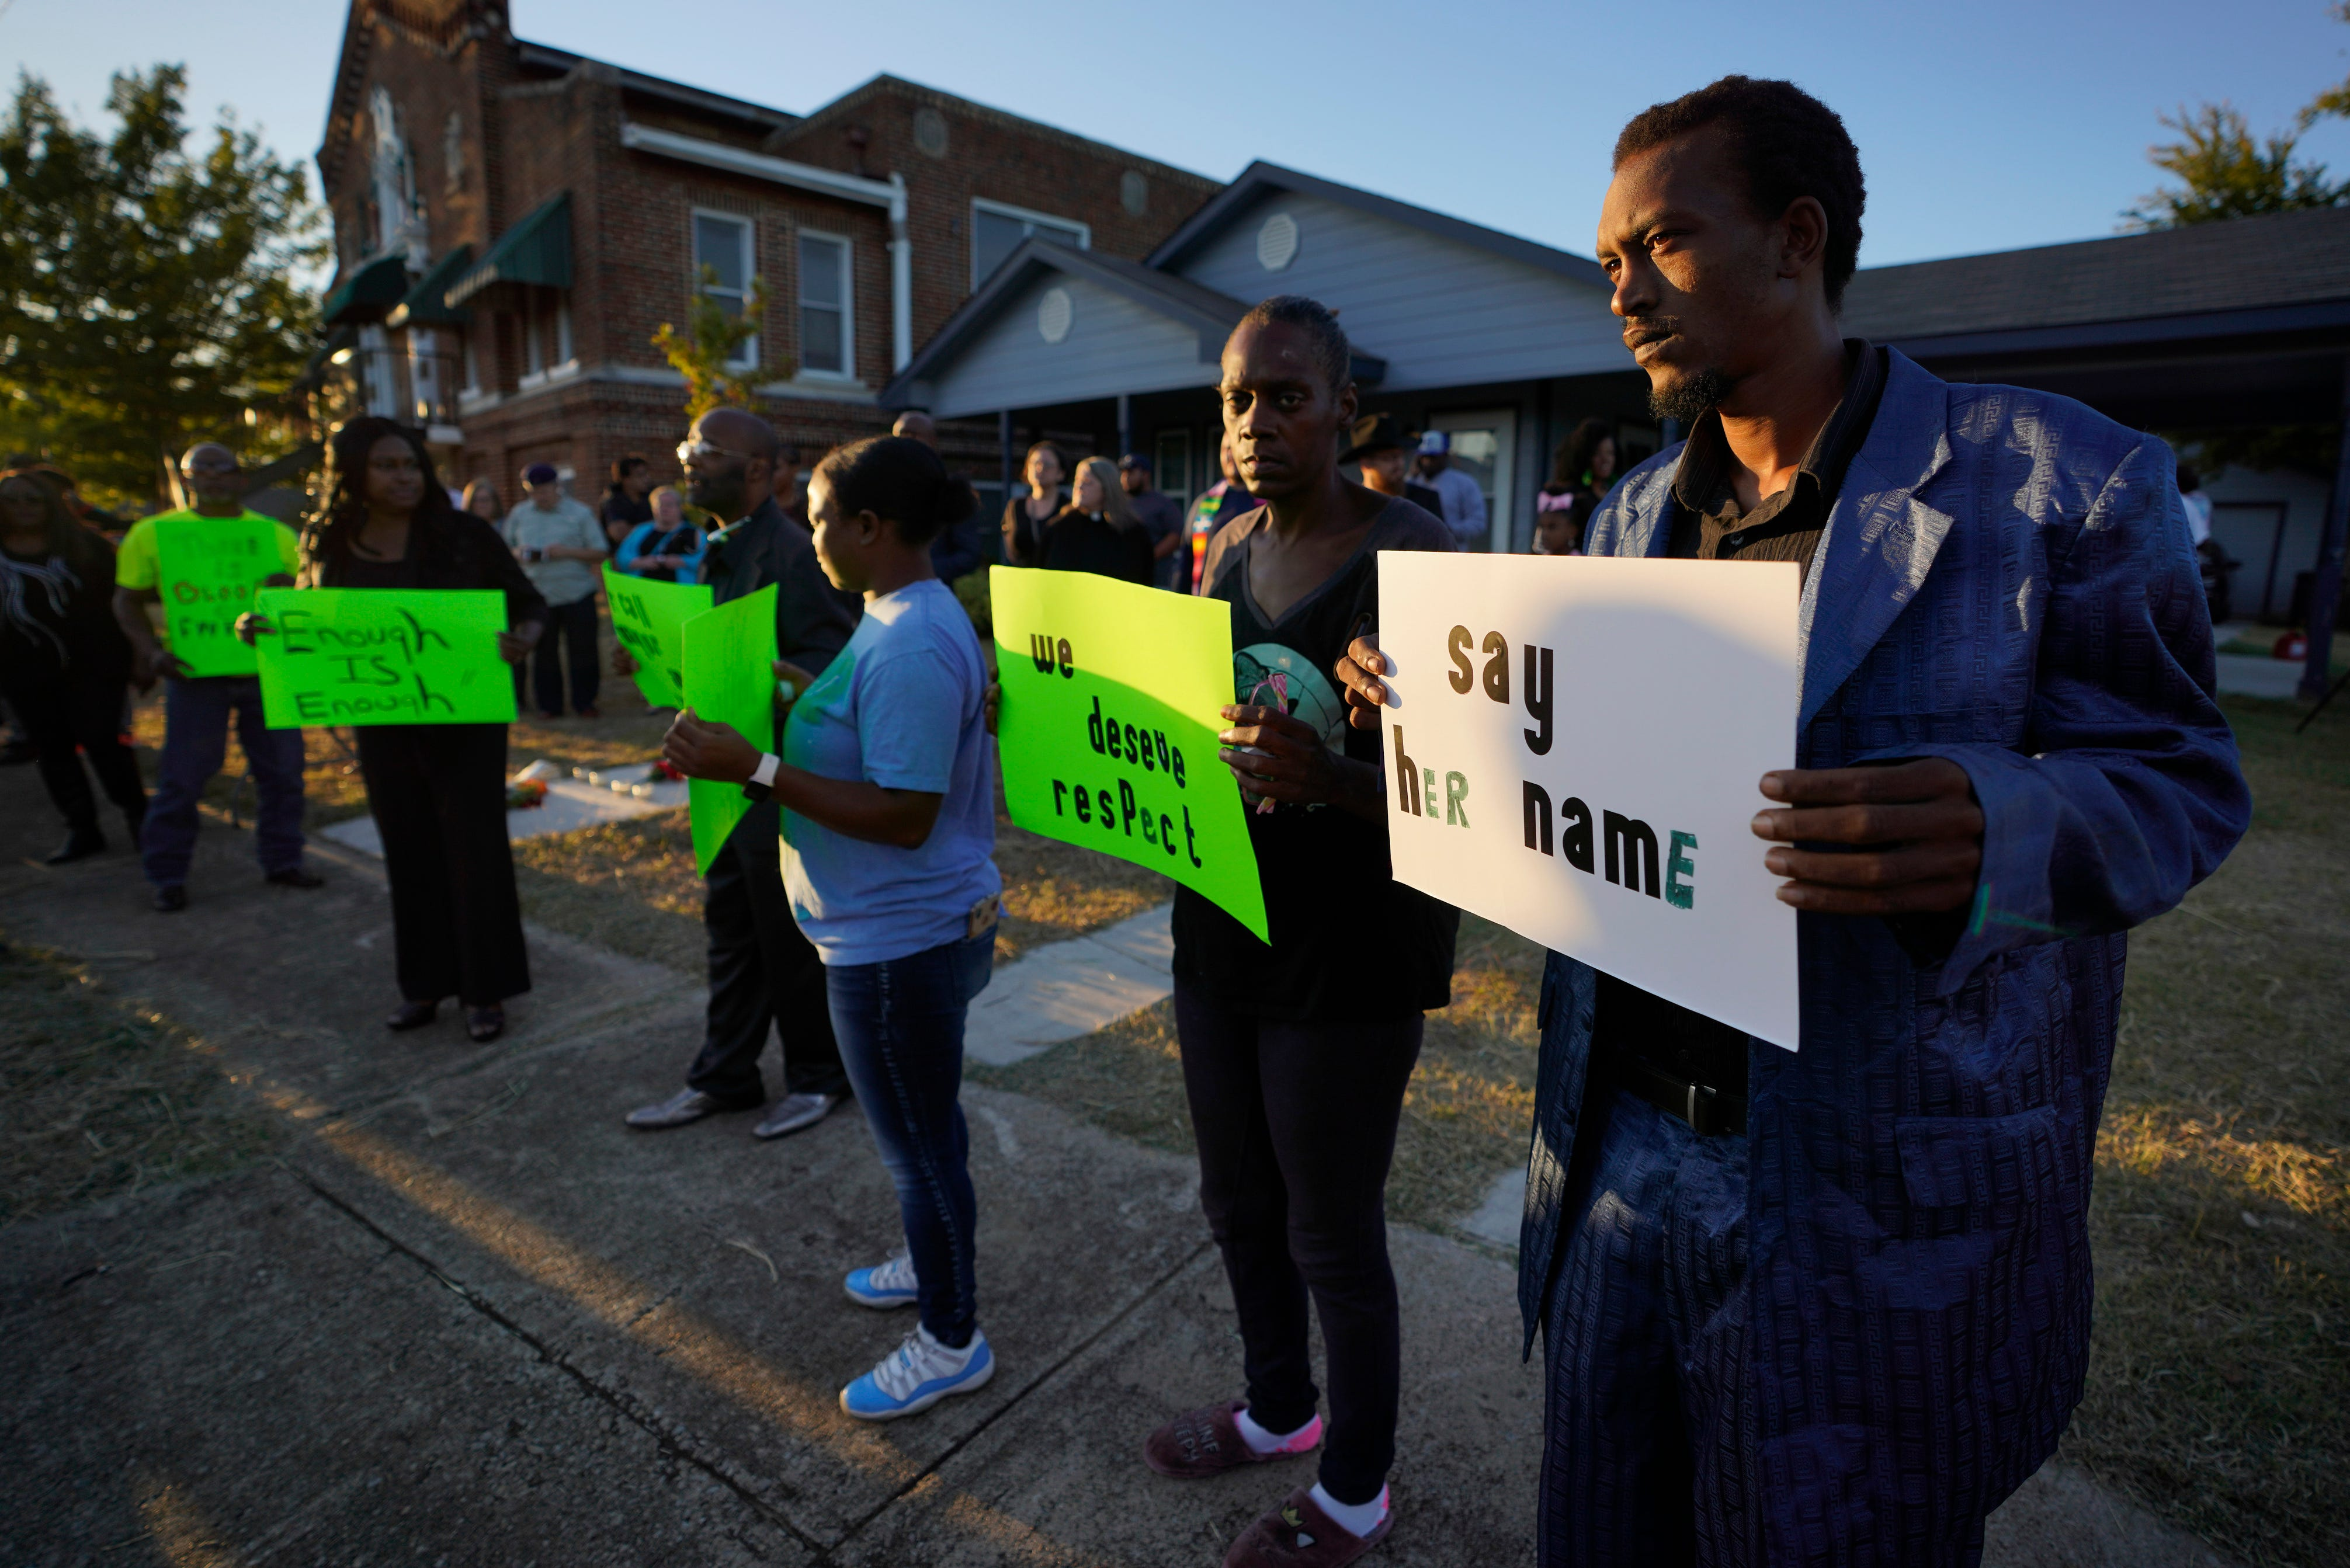 Fort Worth community protests after black woman killed in her home by white officer